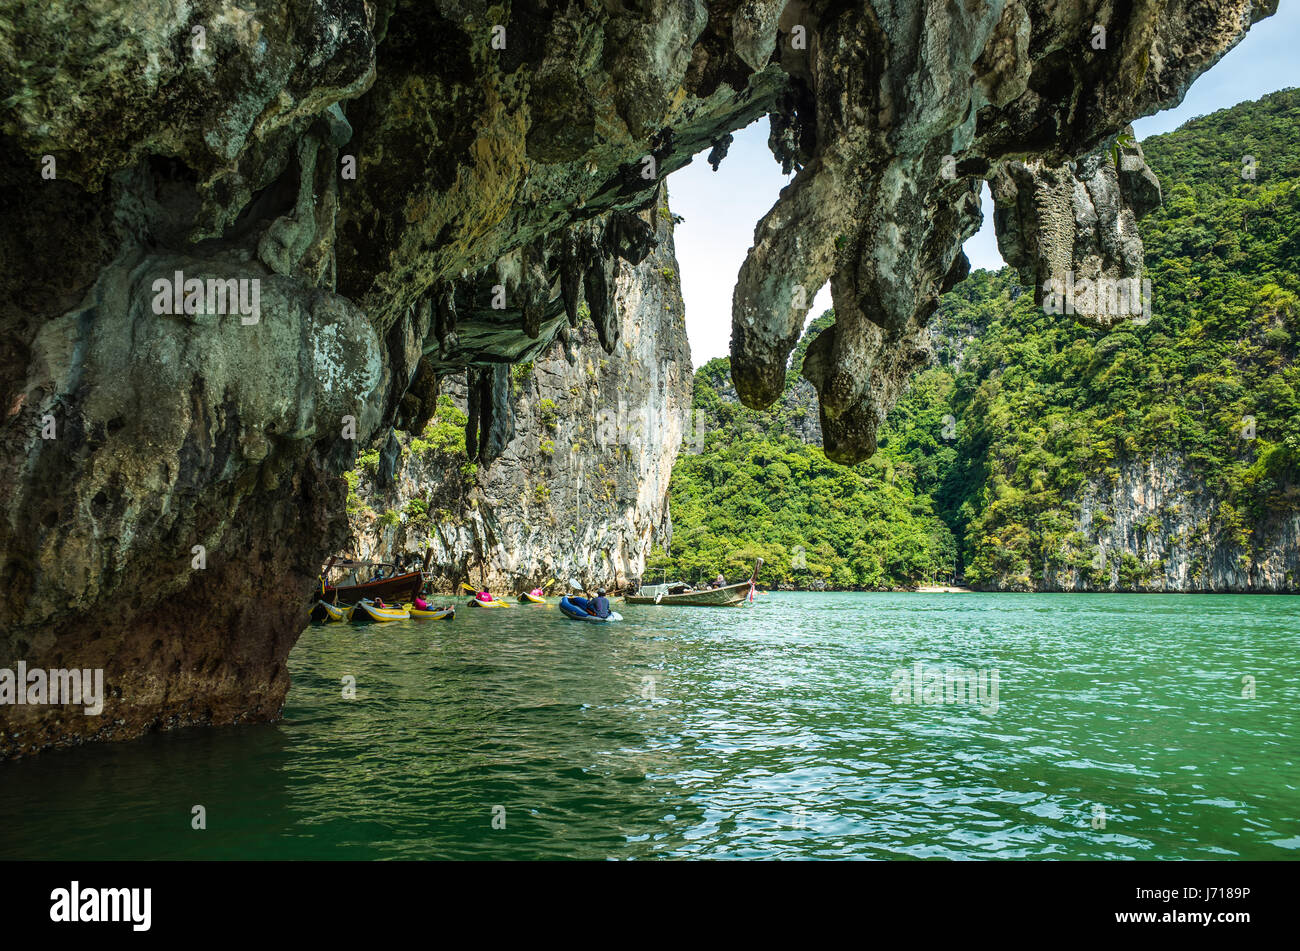 The kayaks near the caves in Phuket, Thailand - Stock Image